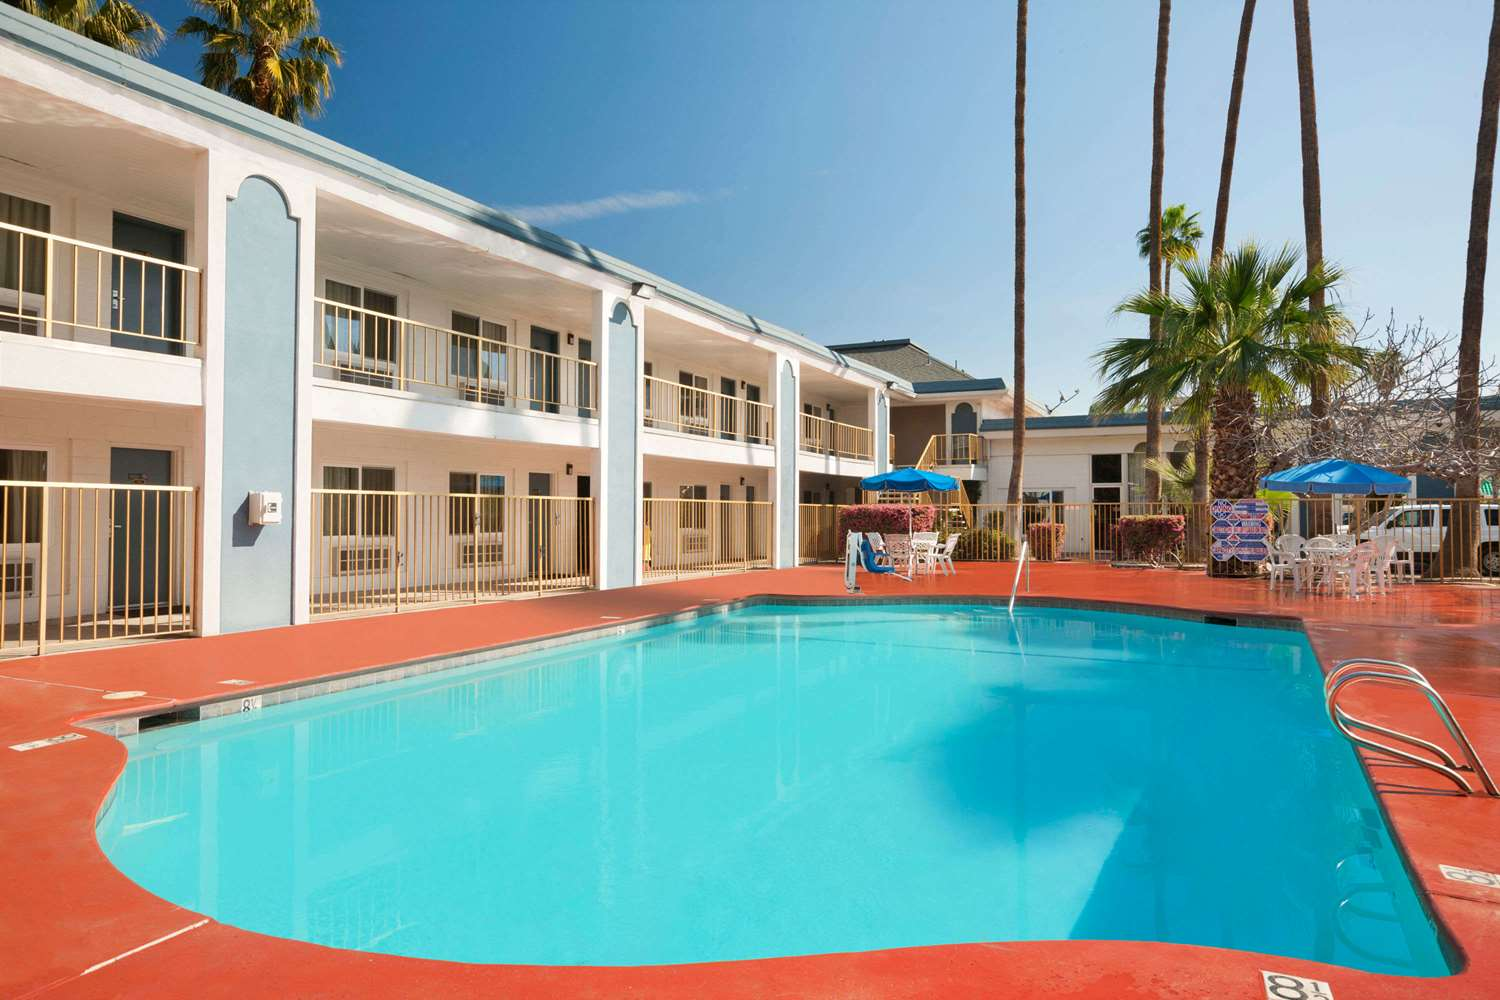 Pool - Travelodge Bakersfield